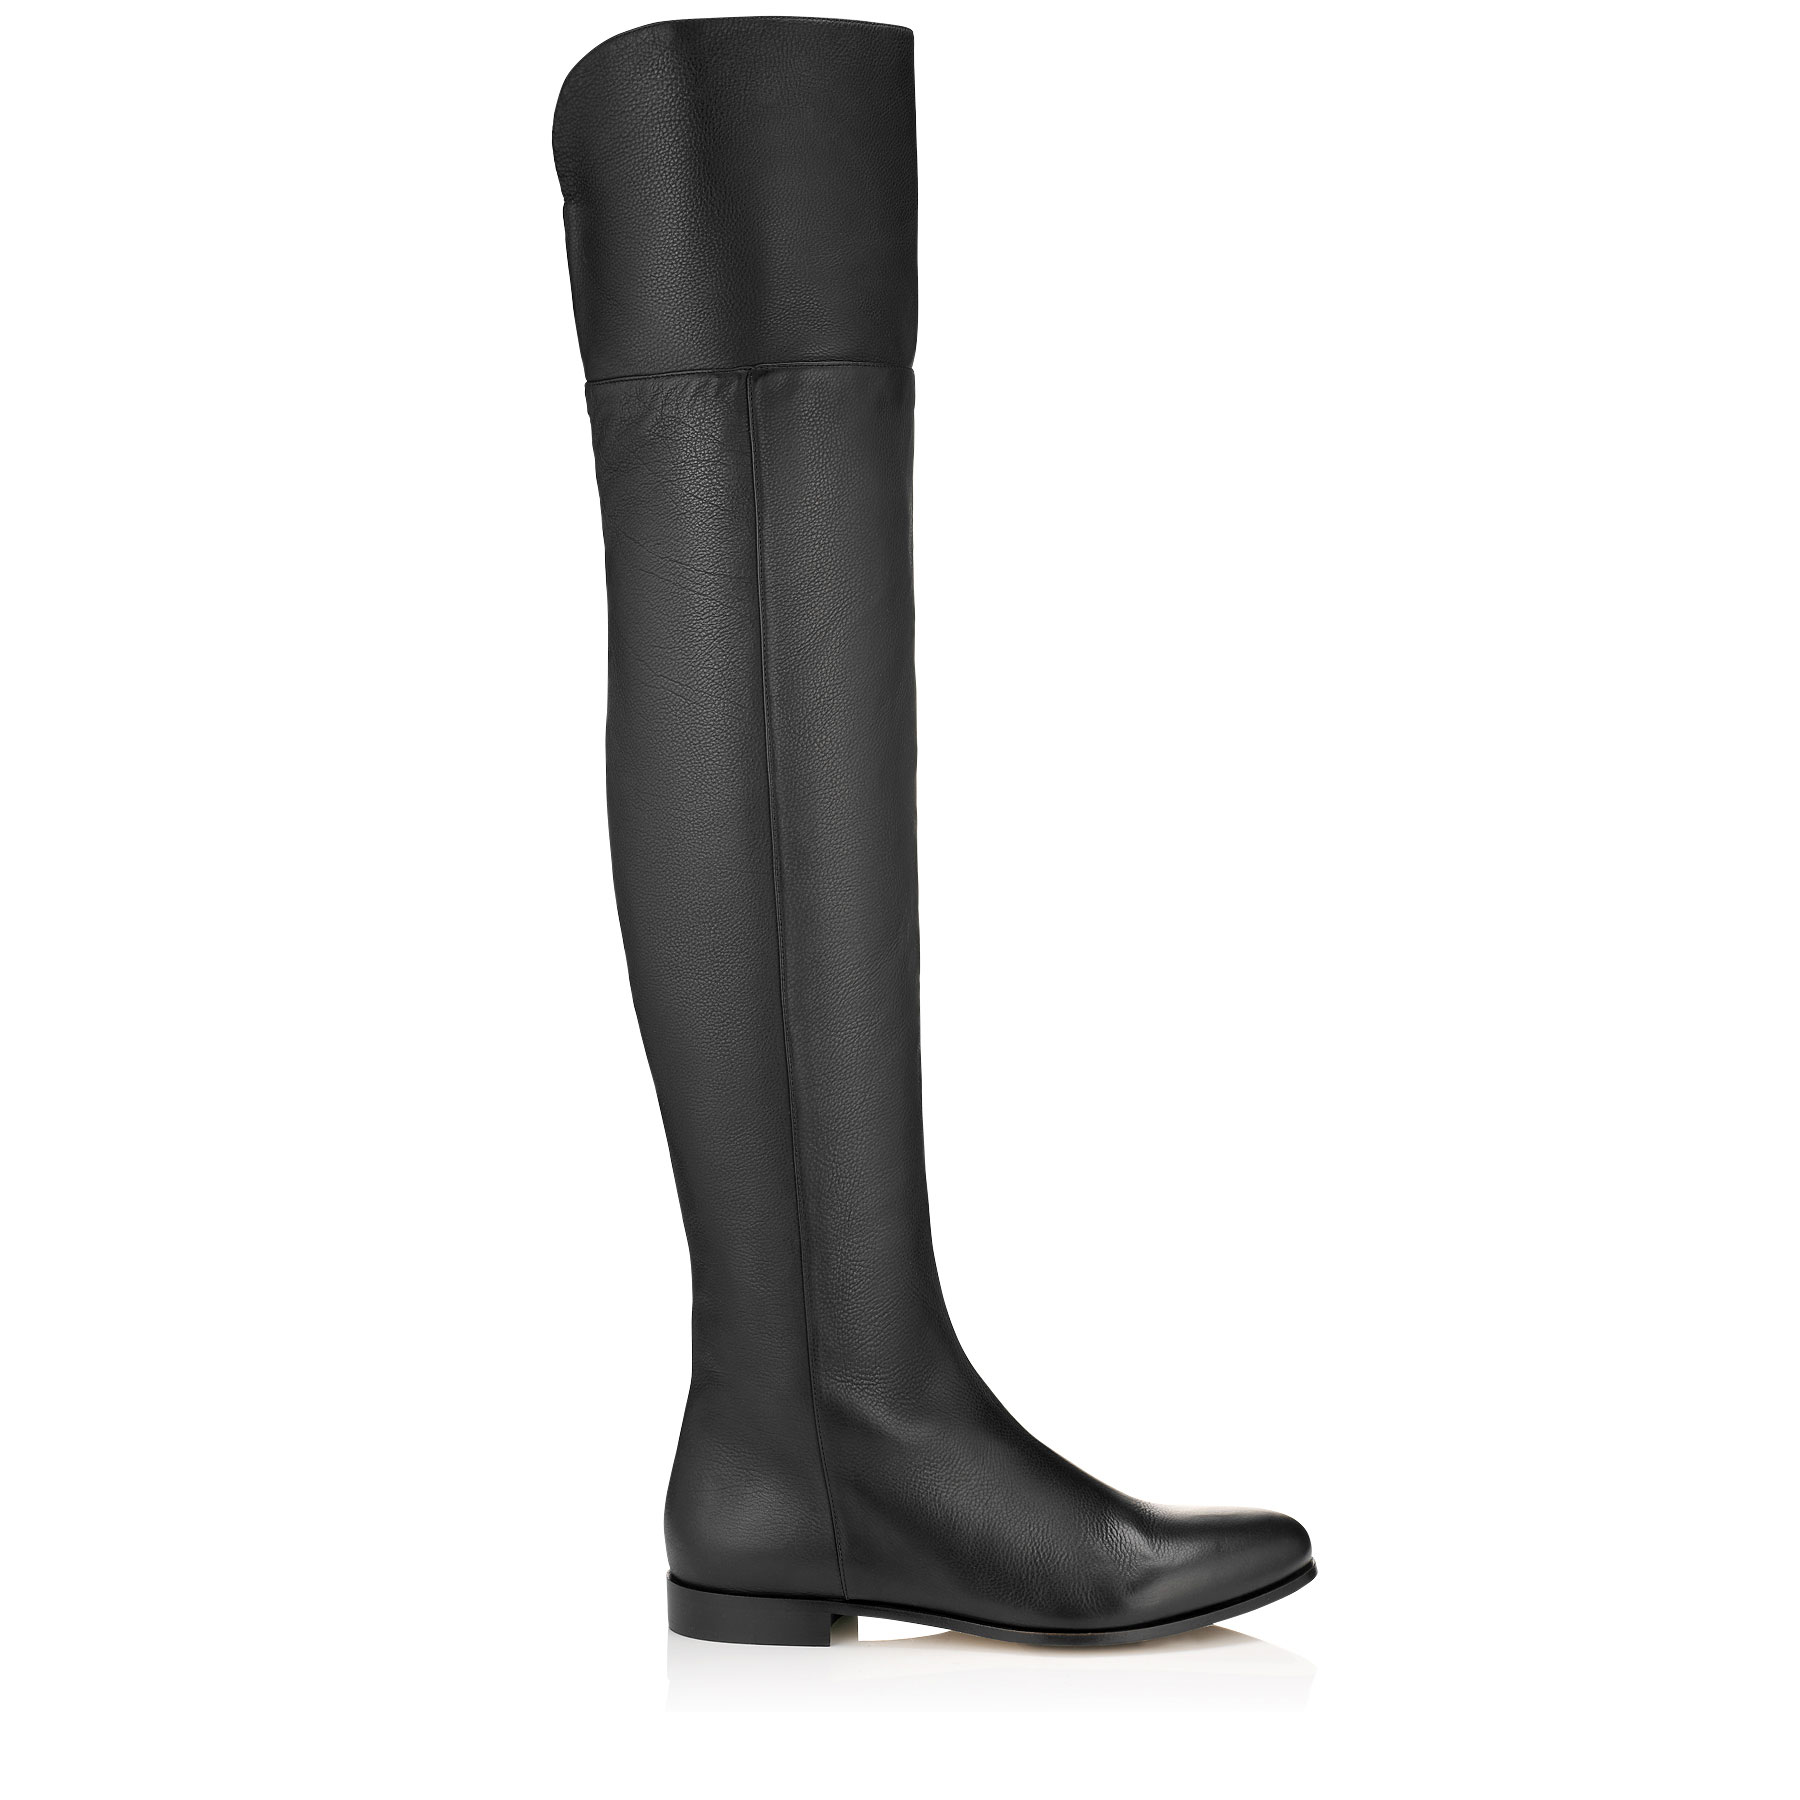 MITTY FLAT Black Grainy Calf Leather Flat Over the Knee Boots by Jimmy Choo